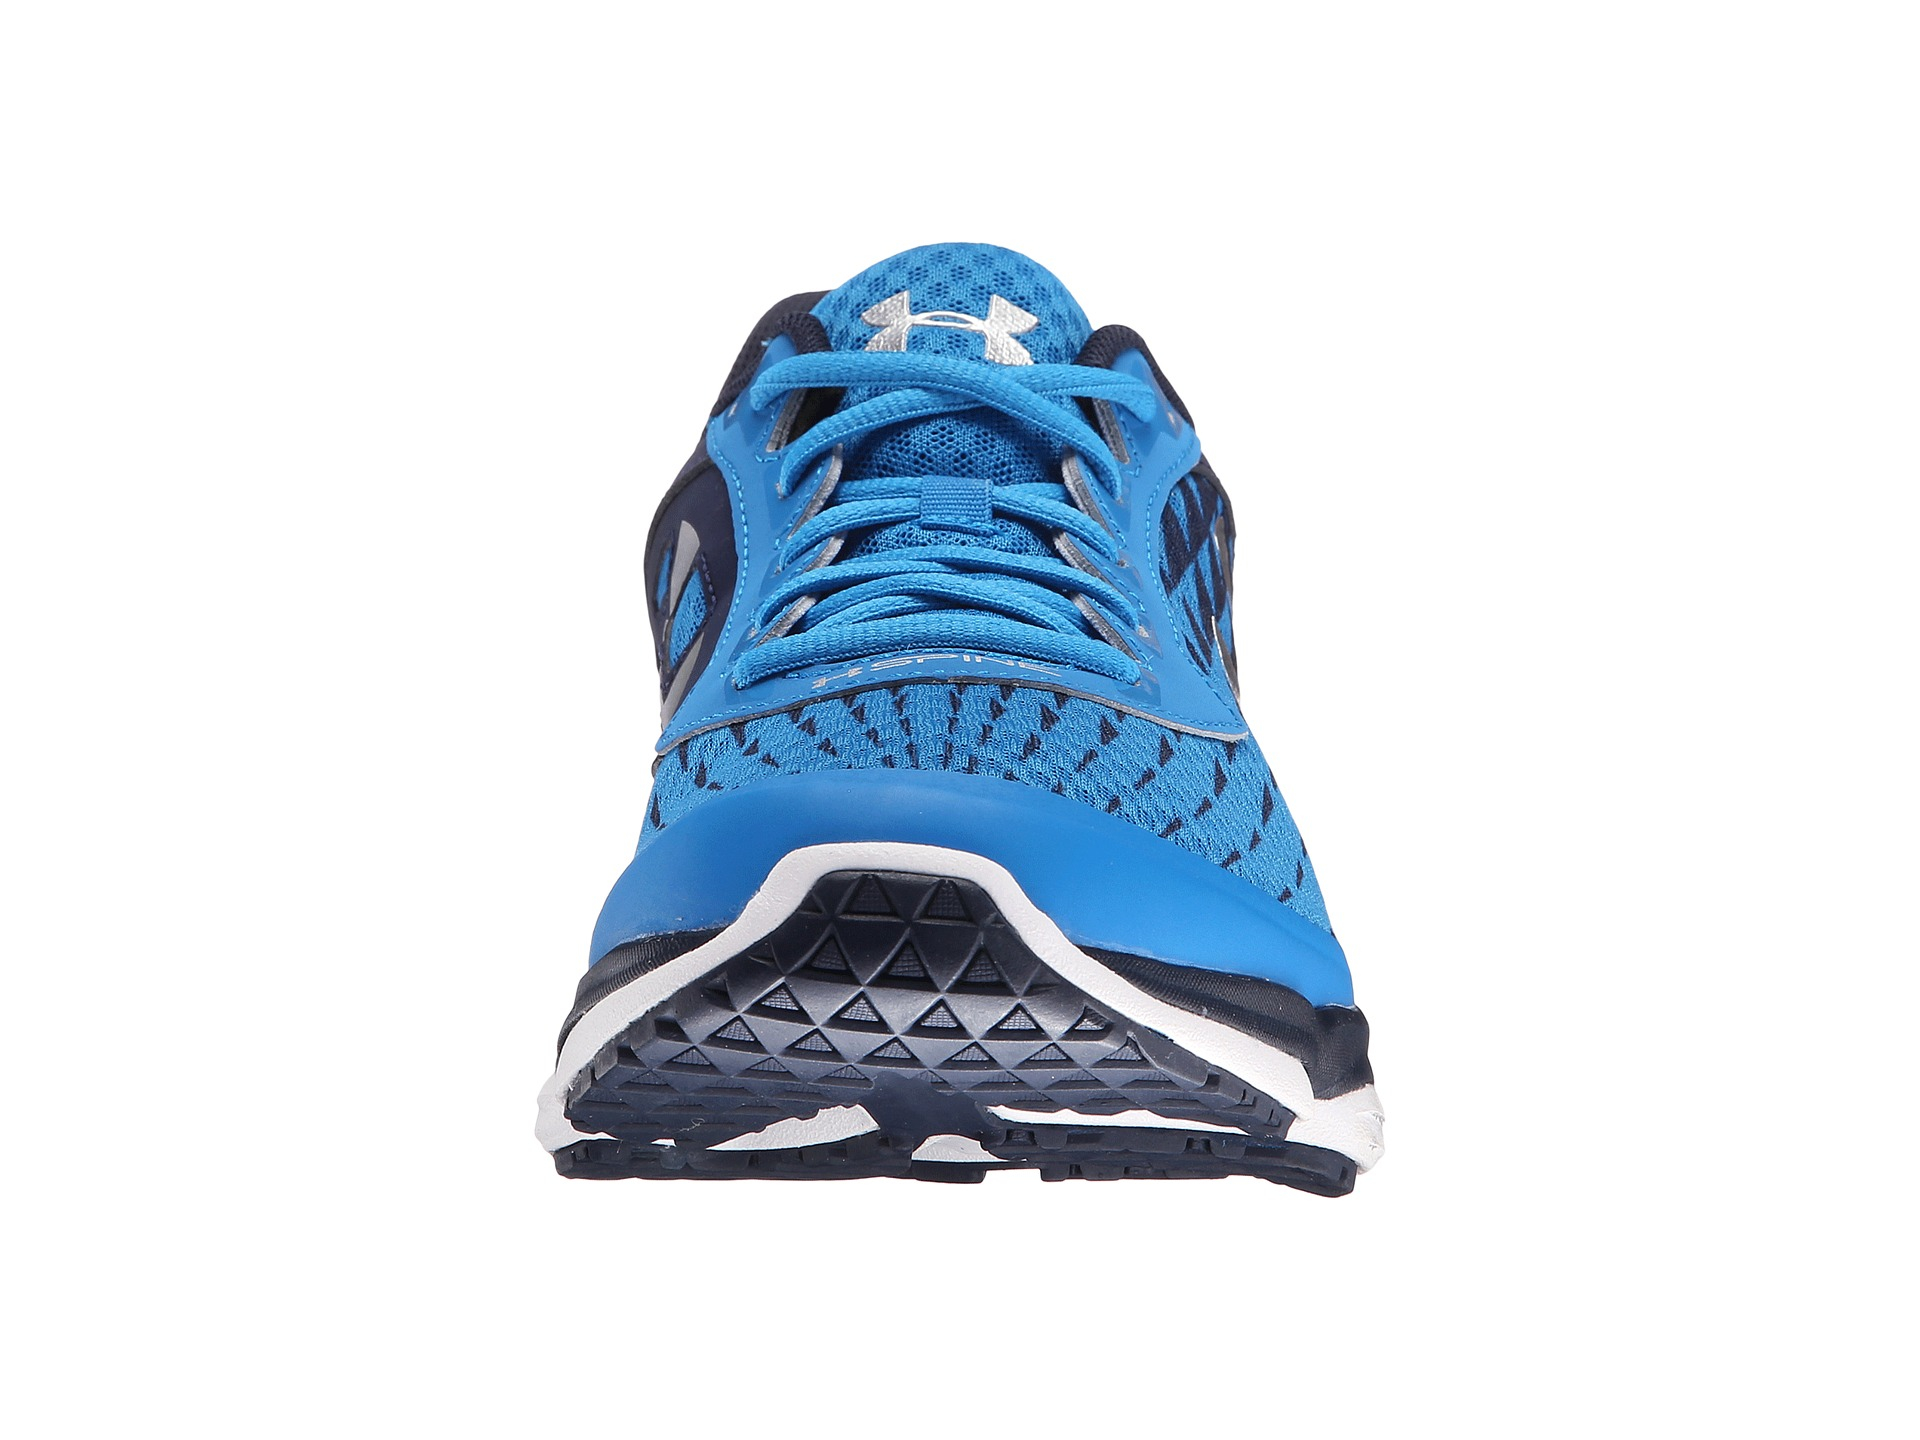 innovative design 01311 e1a6a official store mens under armour spine disrupt running shoes ...